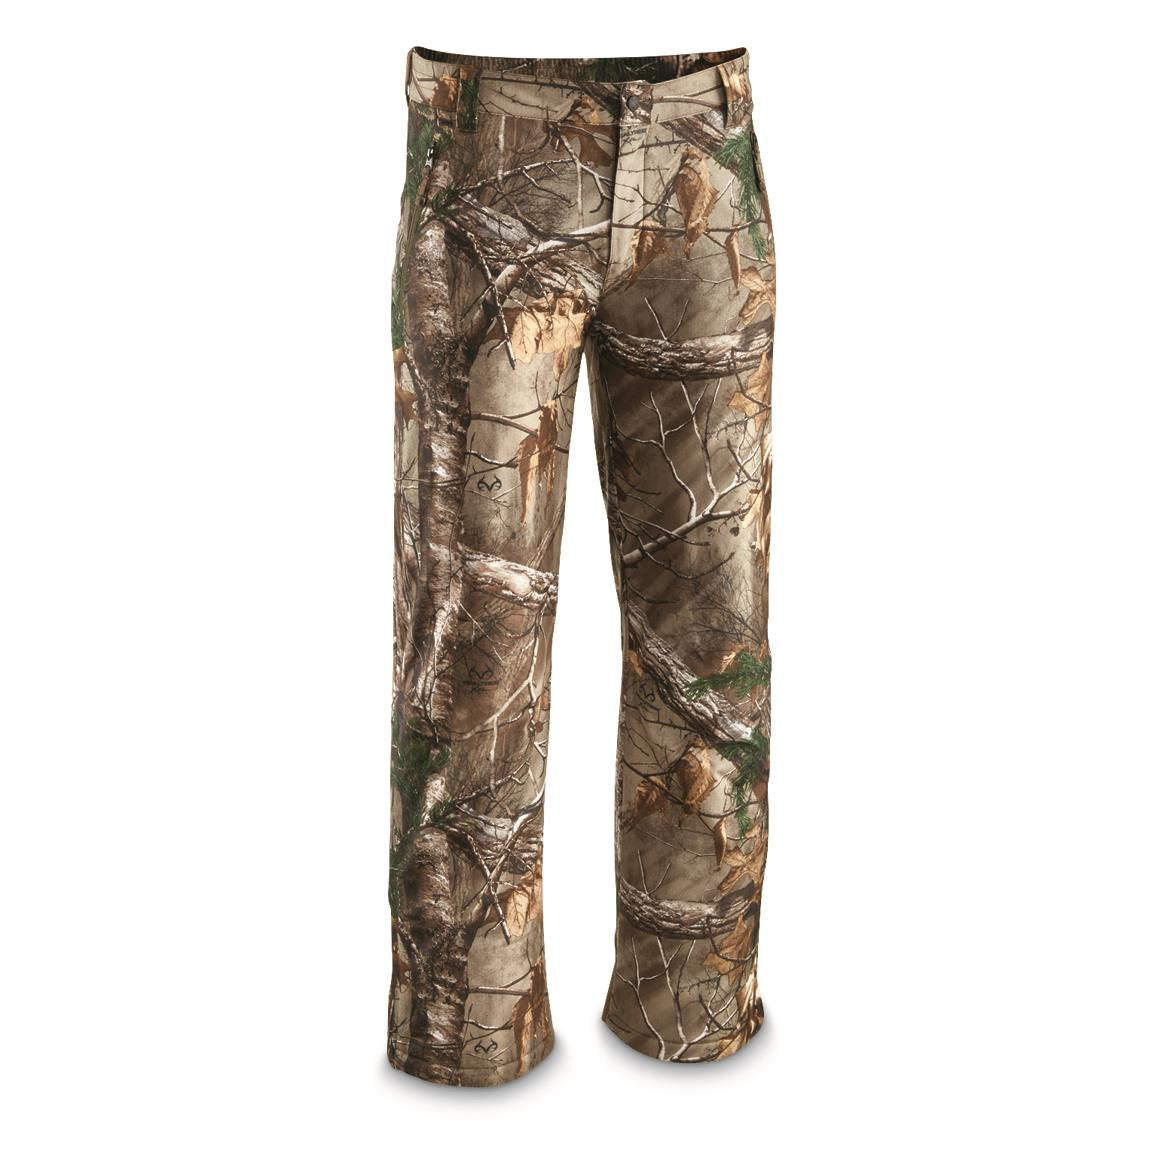 Women's Water Resistant Camo Hunting Pants, Realtree Xtra, Realtree Xtra®